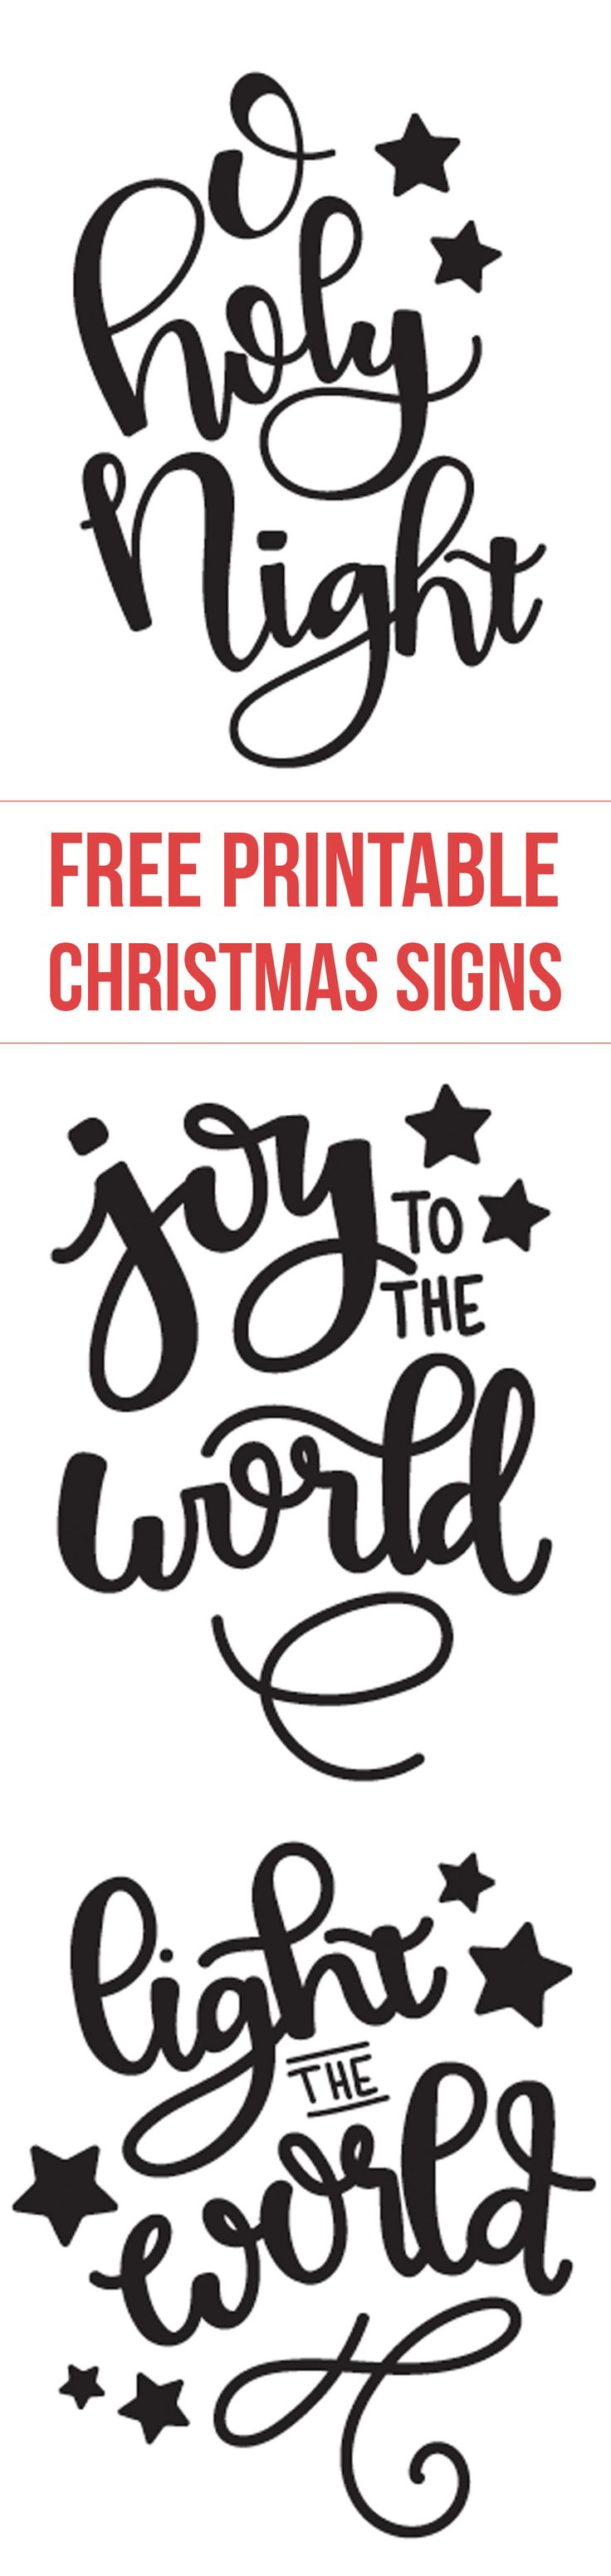 Free printable Christmas designs -O Holy Night - Joy to the World - Light the world